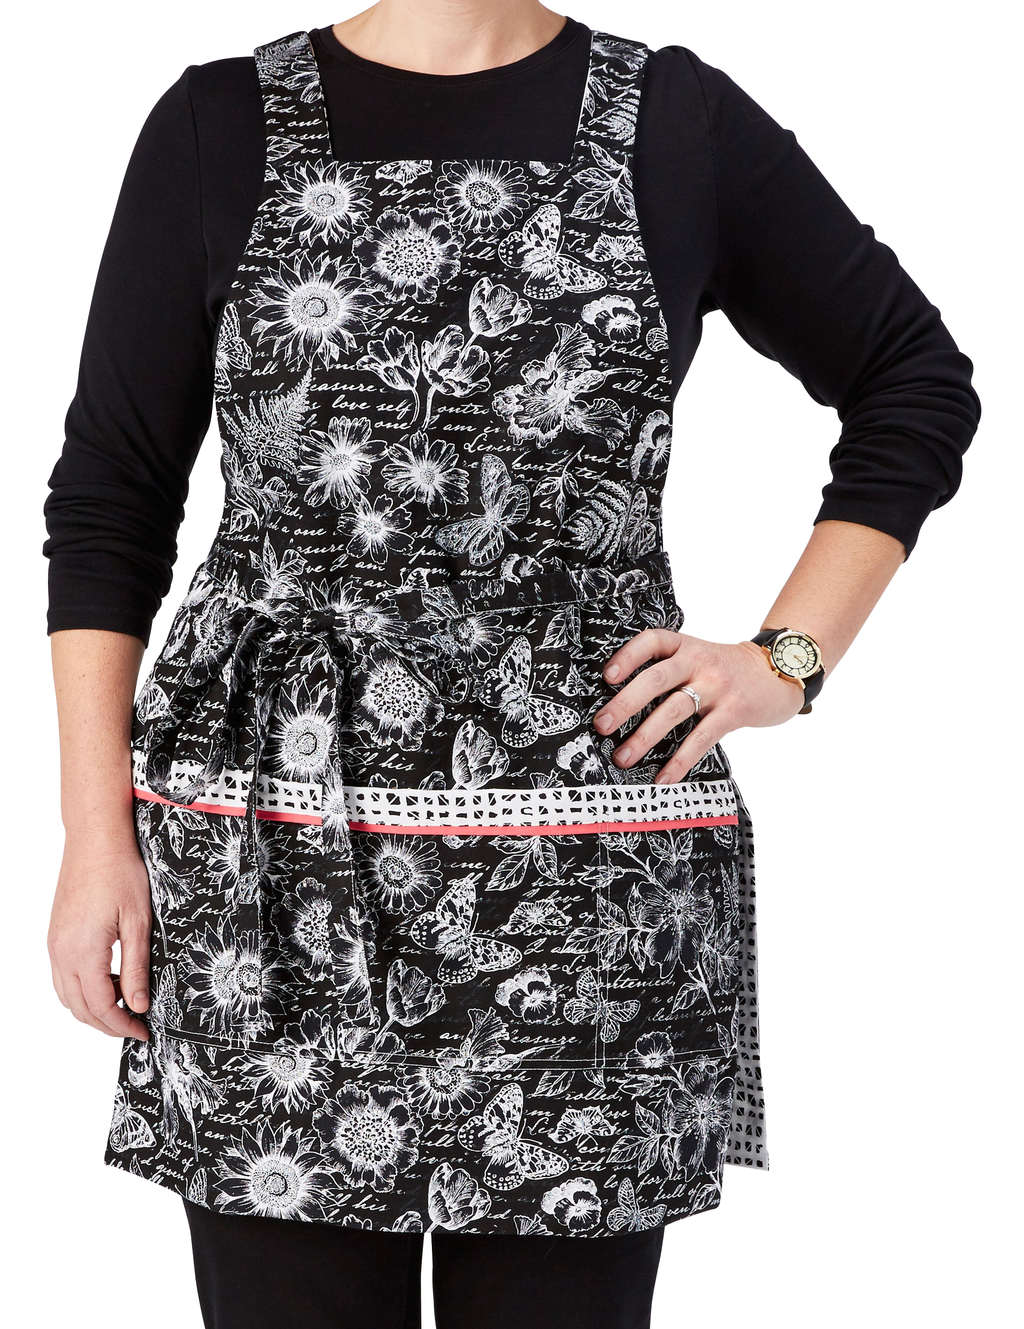 This stylish apron features a timeless black and white garden journal print apron reversing to a black and white pattern of miniature blocks, garden journal print side, front view.